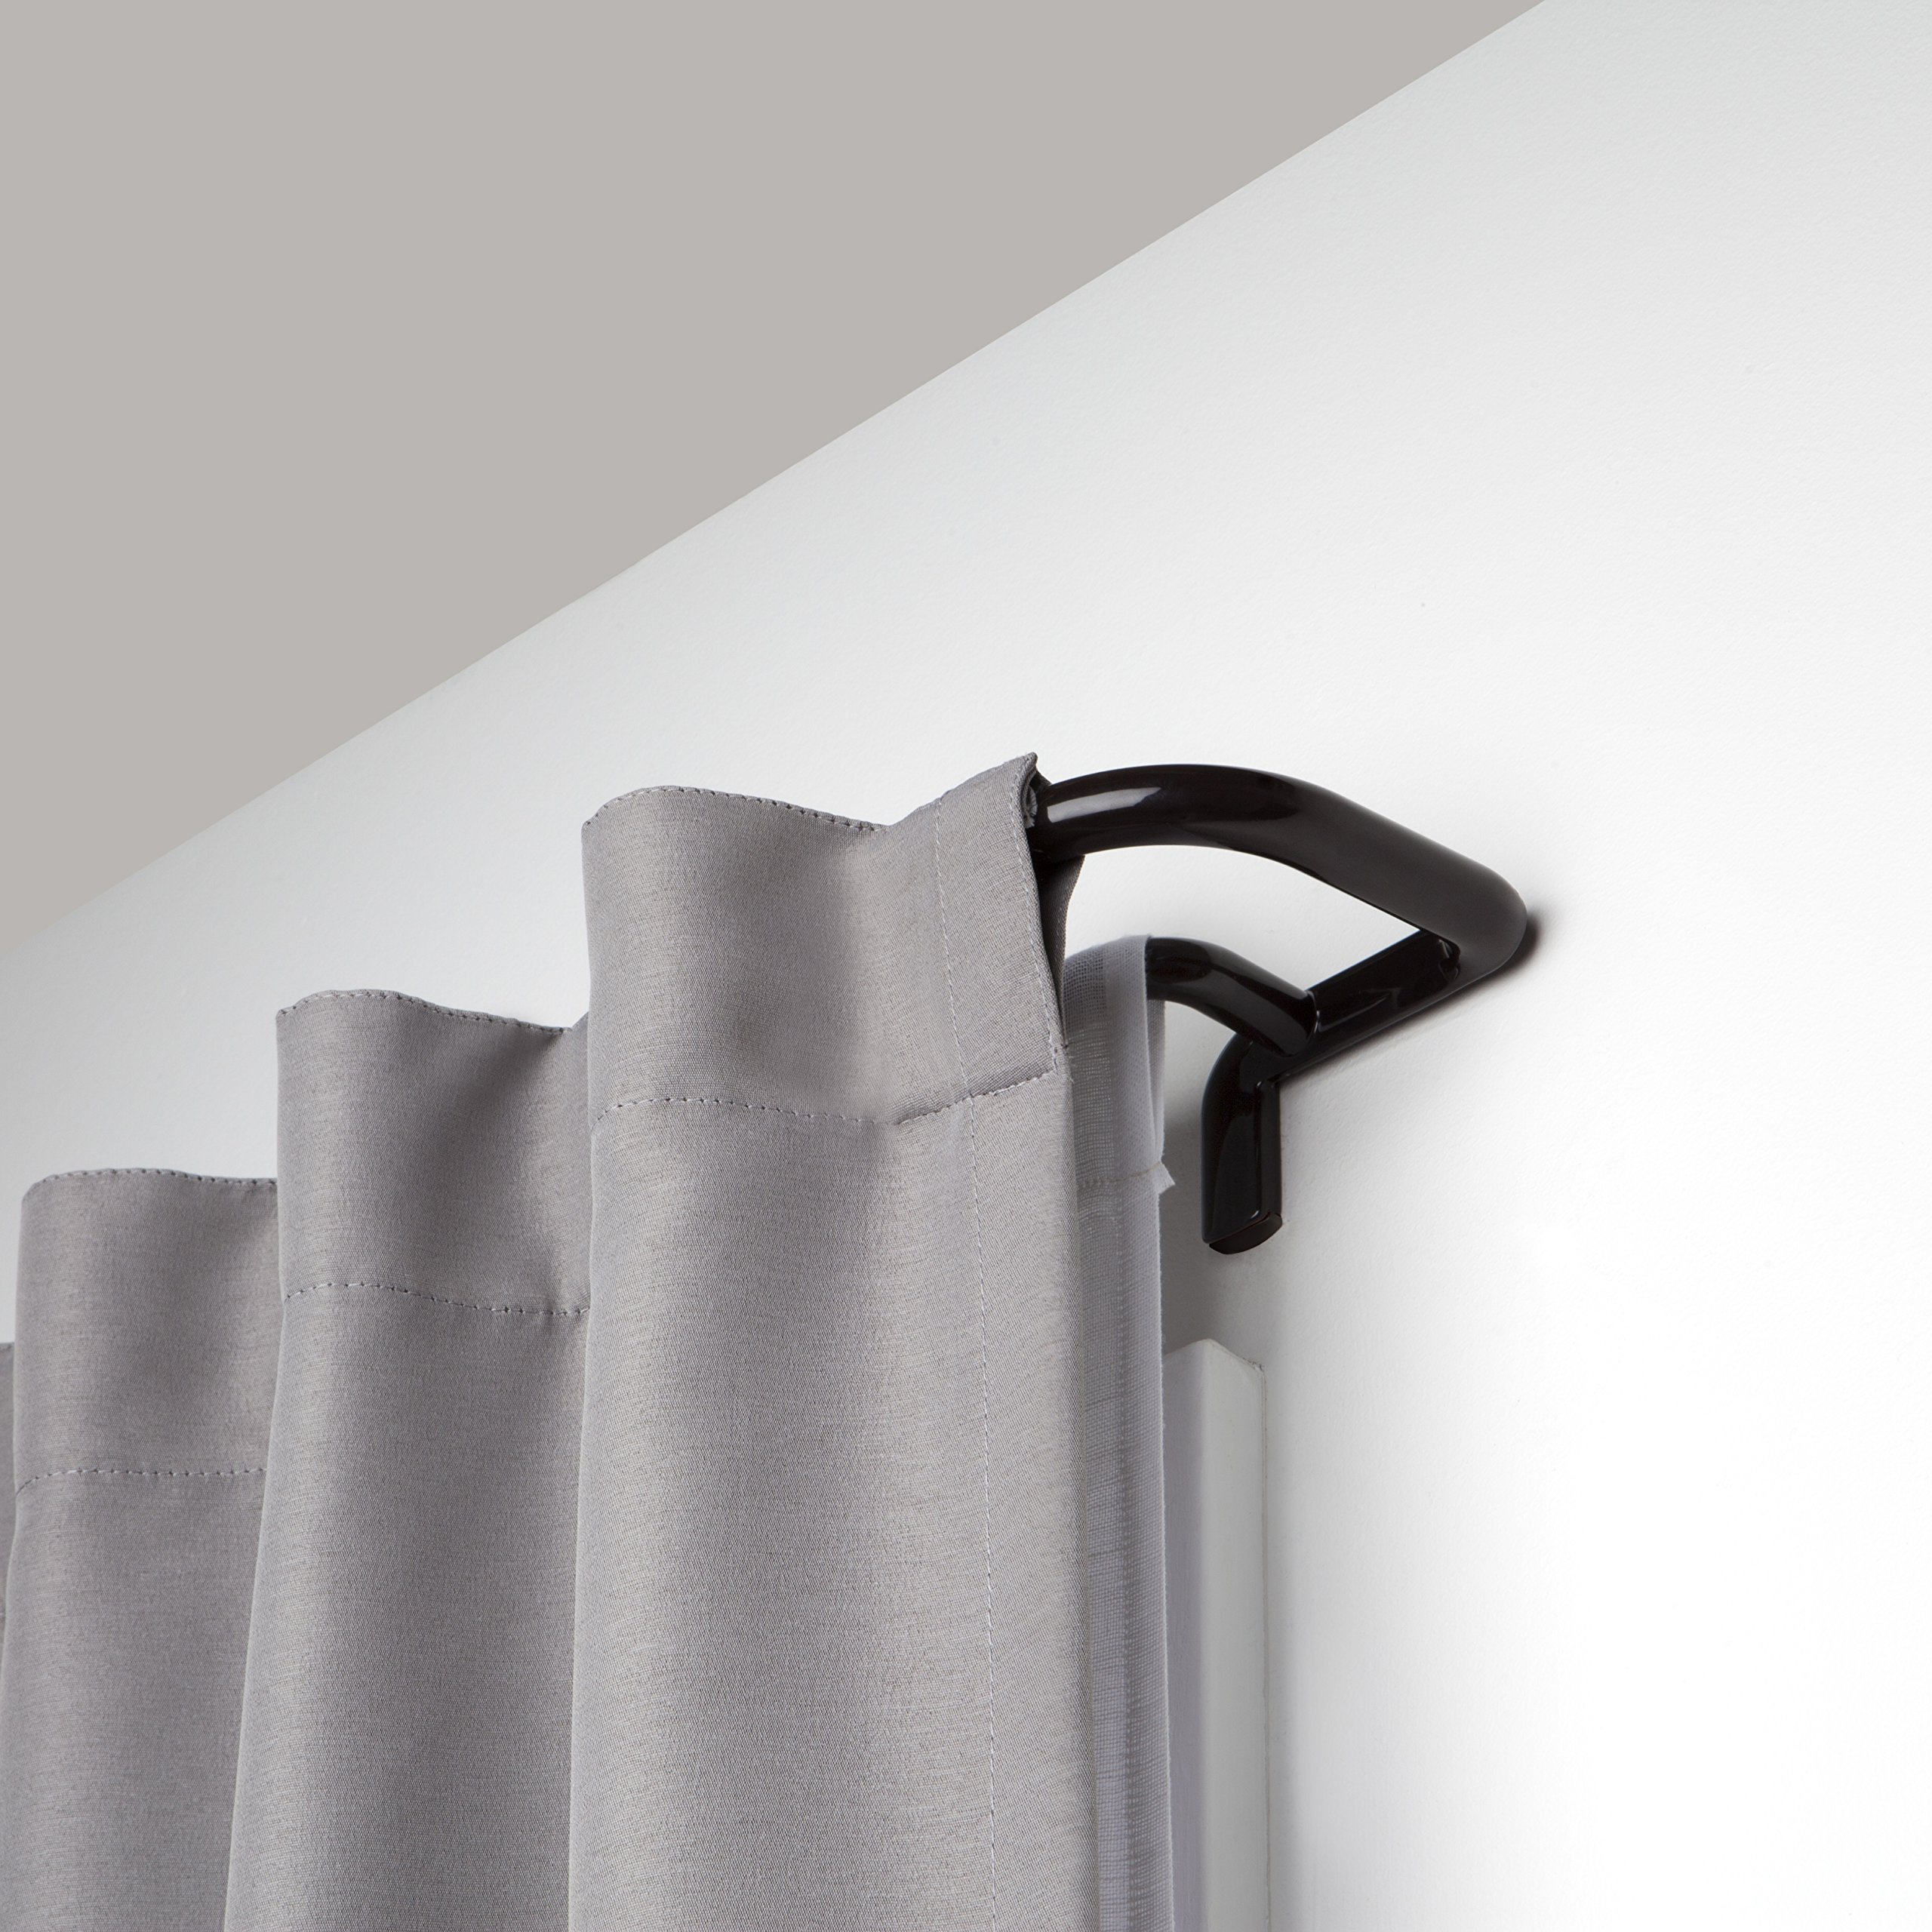 Umbra Twilight Double Curtain Rod Set – Wrap Around Design is Ideal for Blackout Curtains or Room Darkening Curtains, 88 to 144 Inch, Auburn Bronze